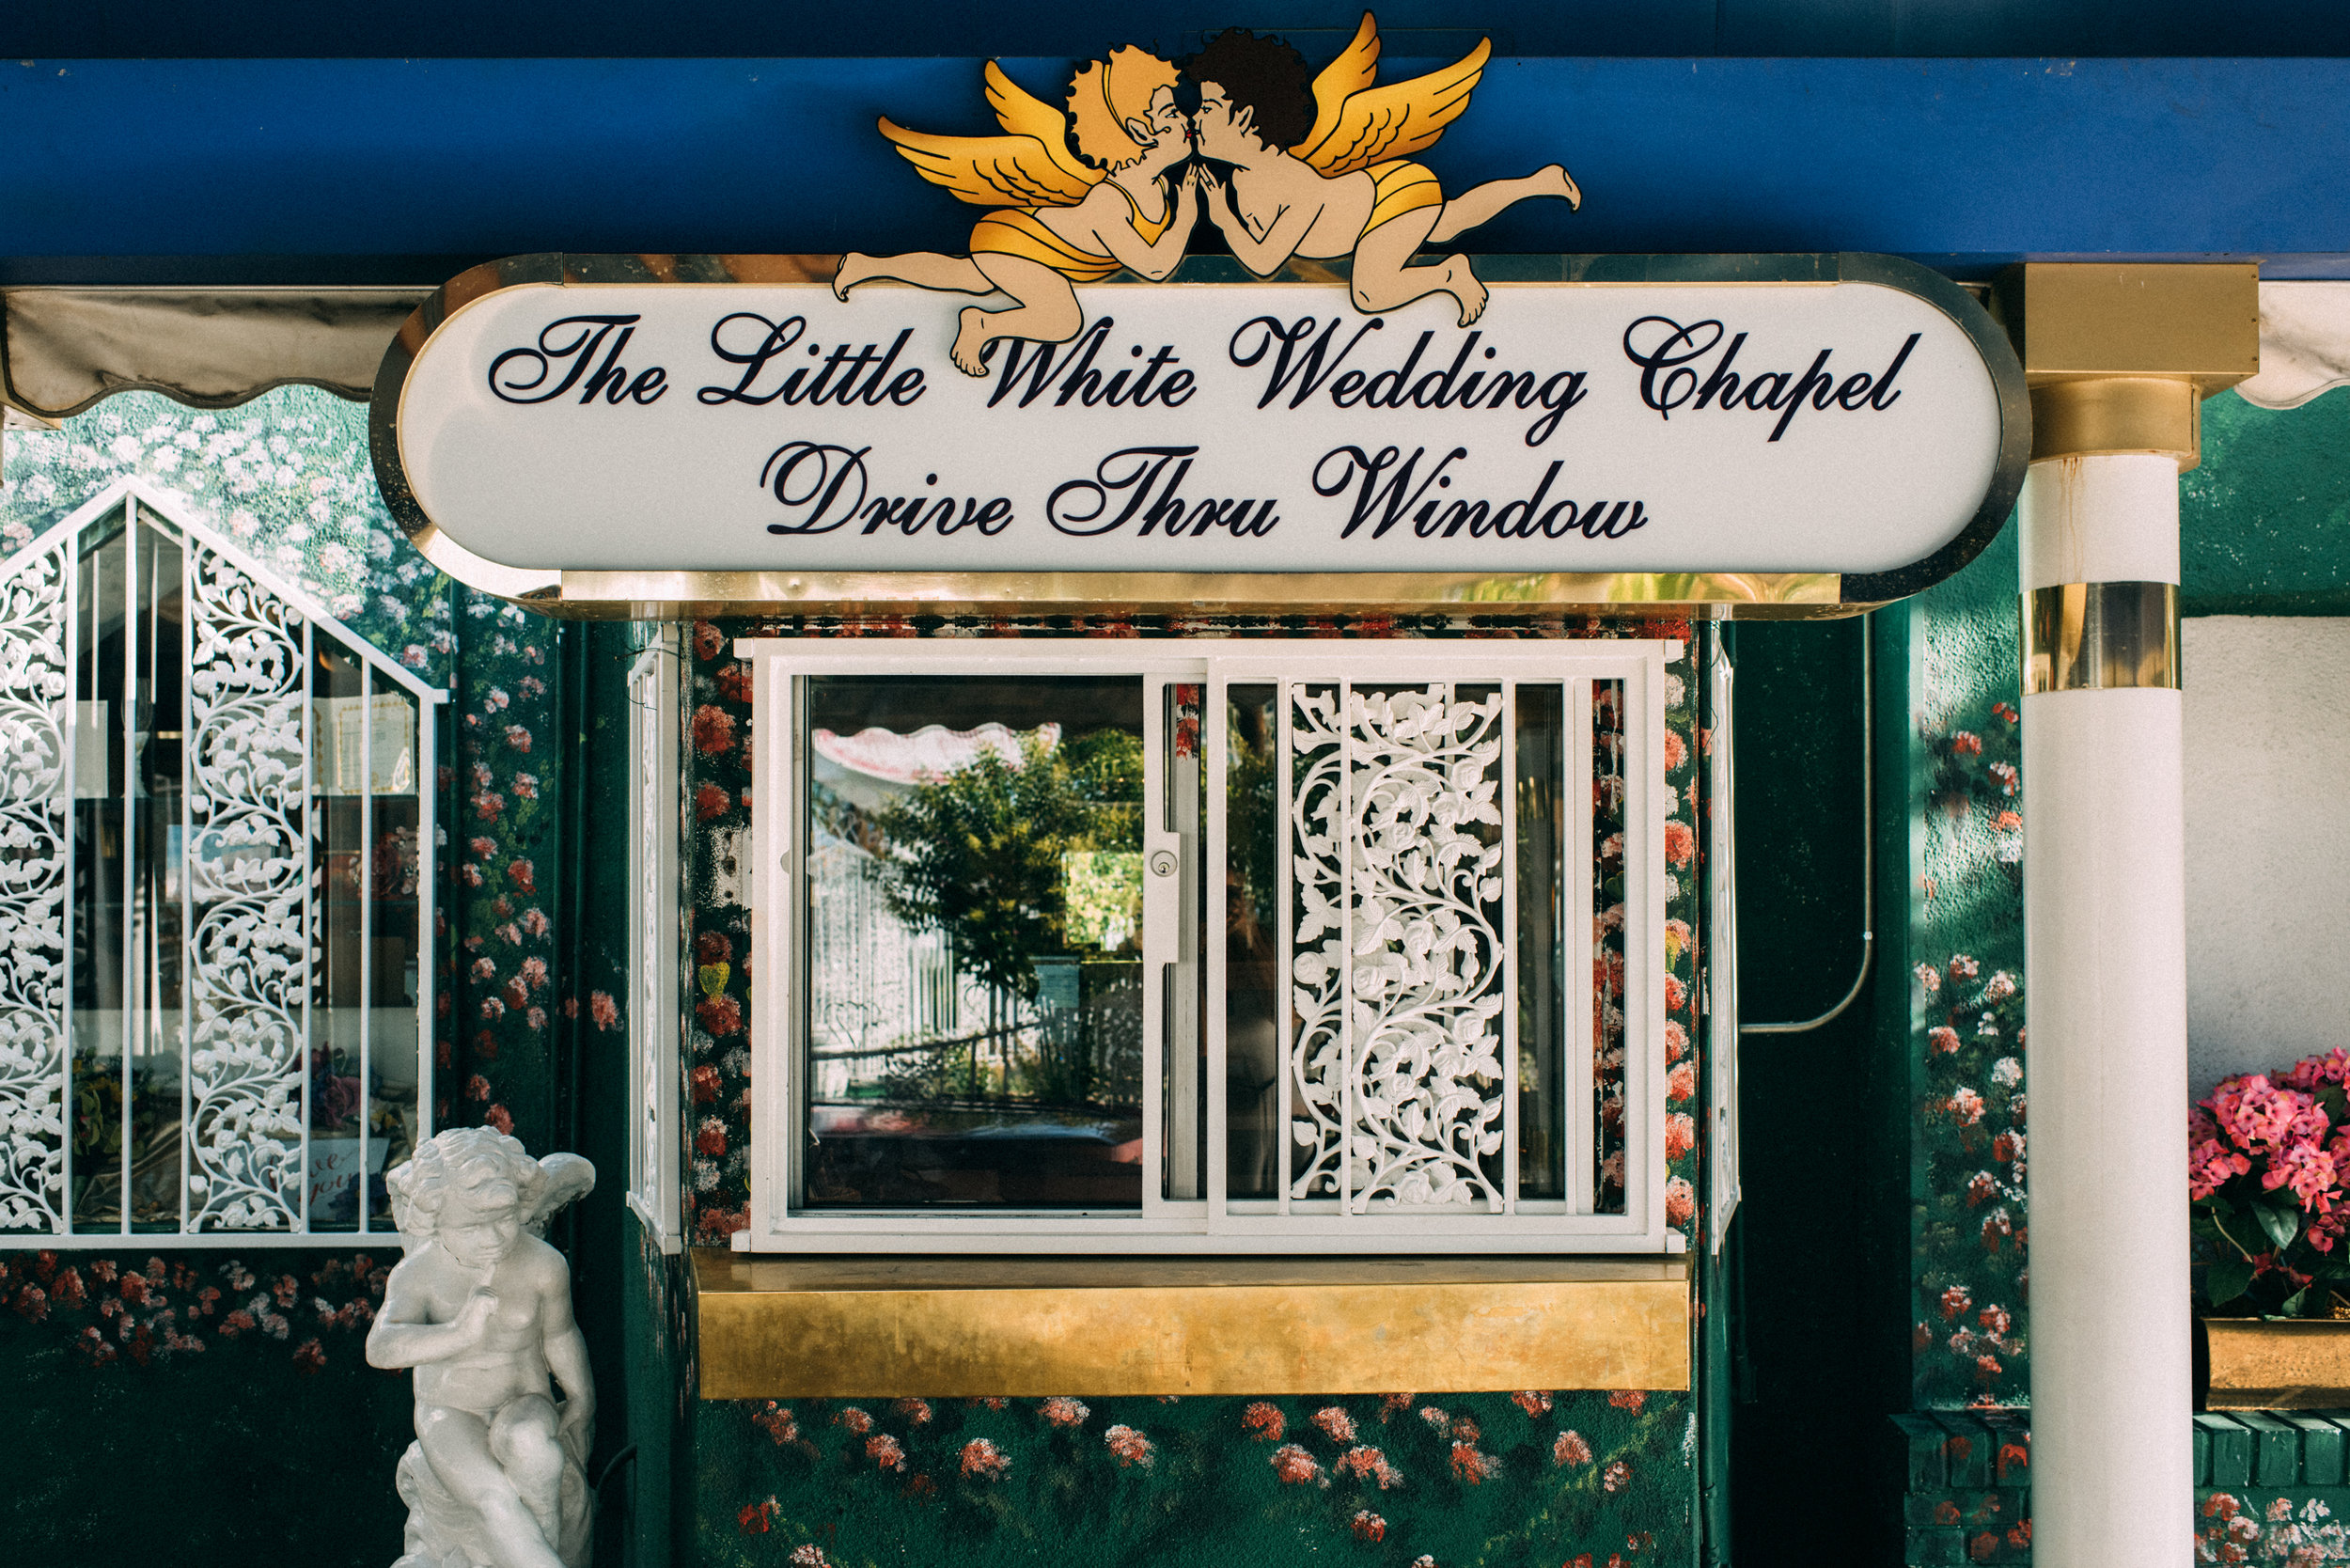 las vegas elopement, las vegas chapel elopement, little white chapel elopement, ashley marie myers.jpg